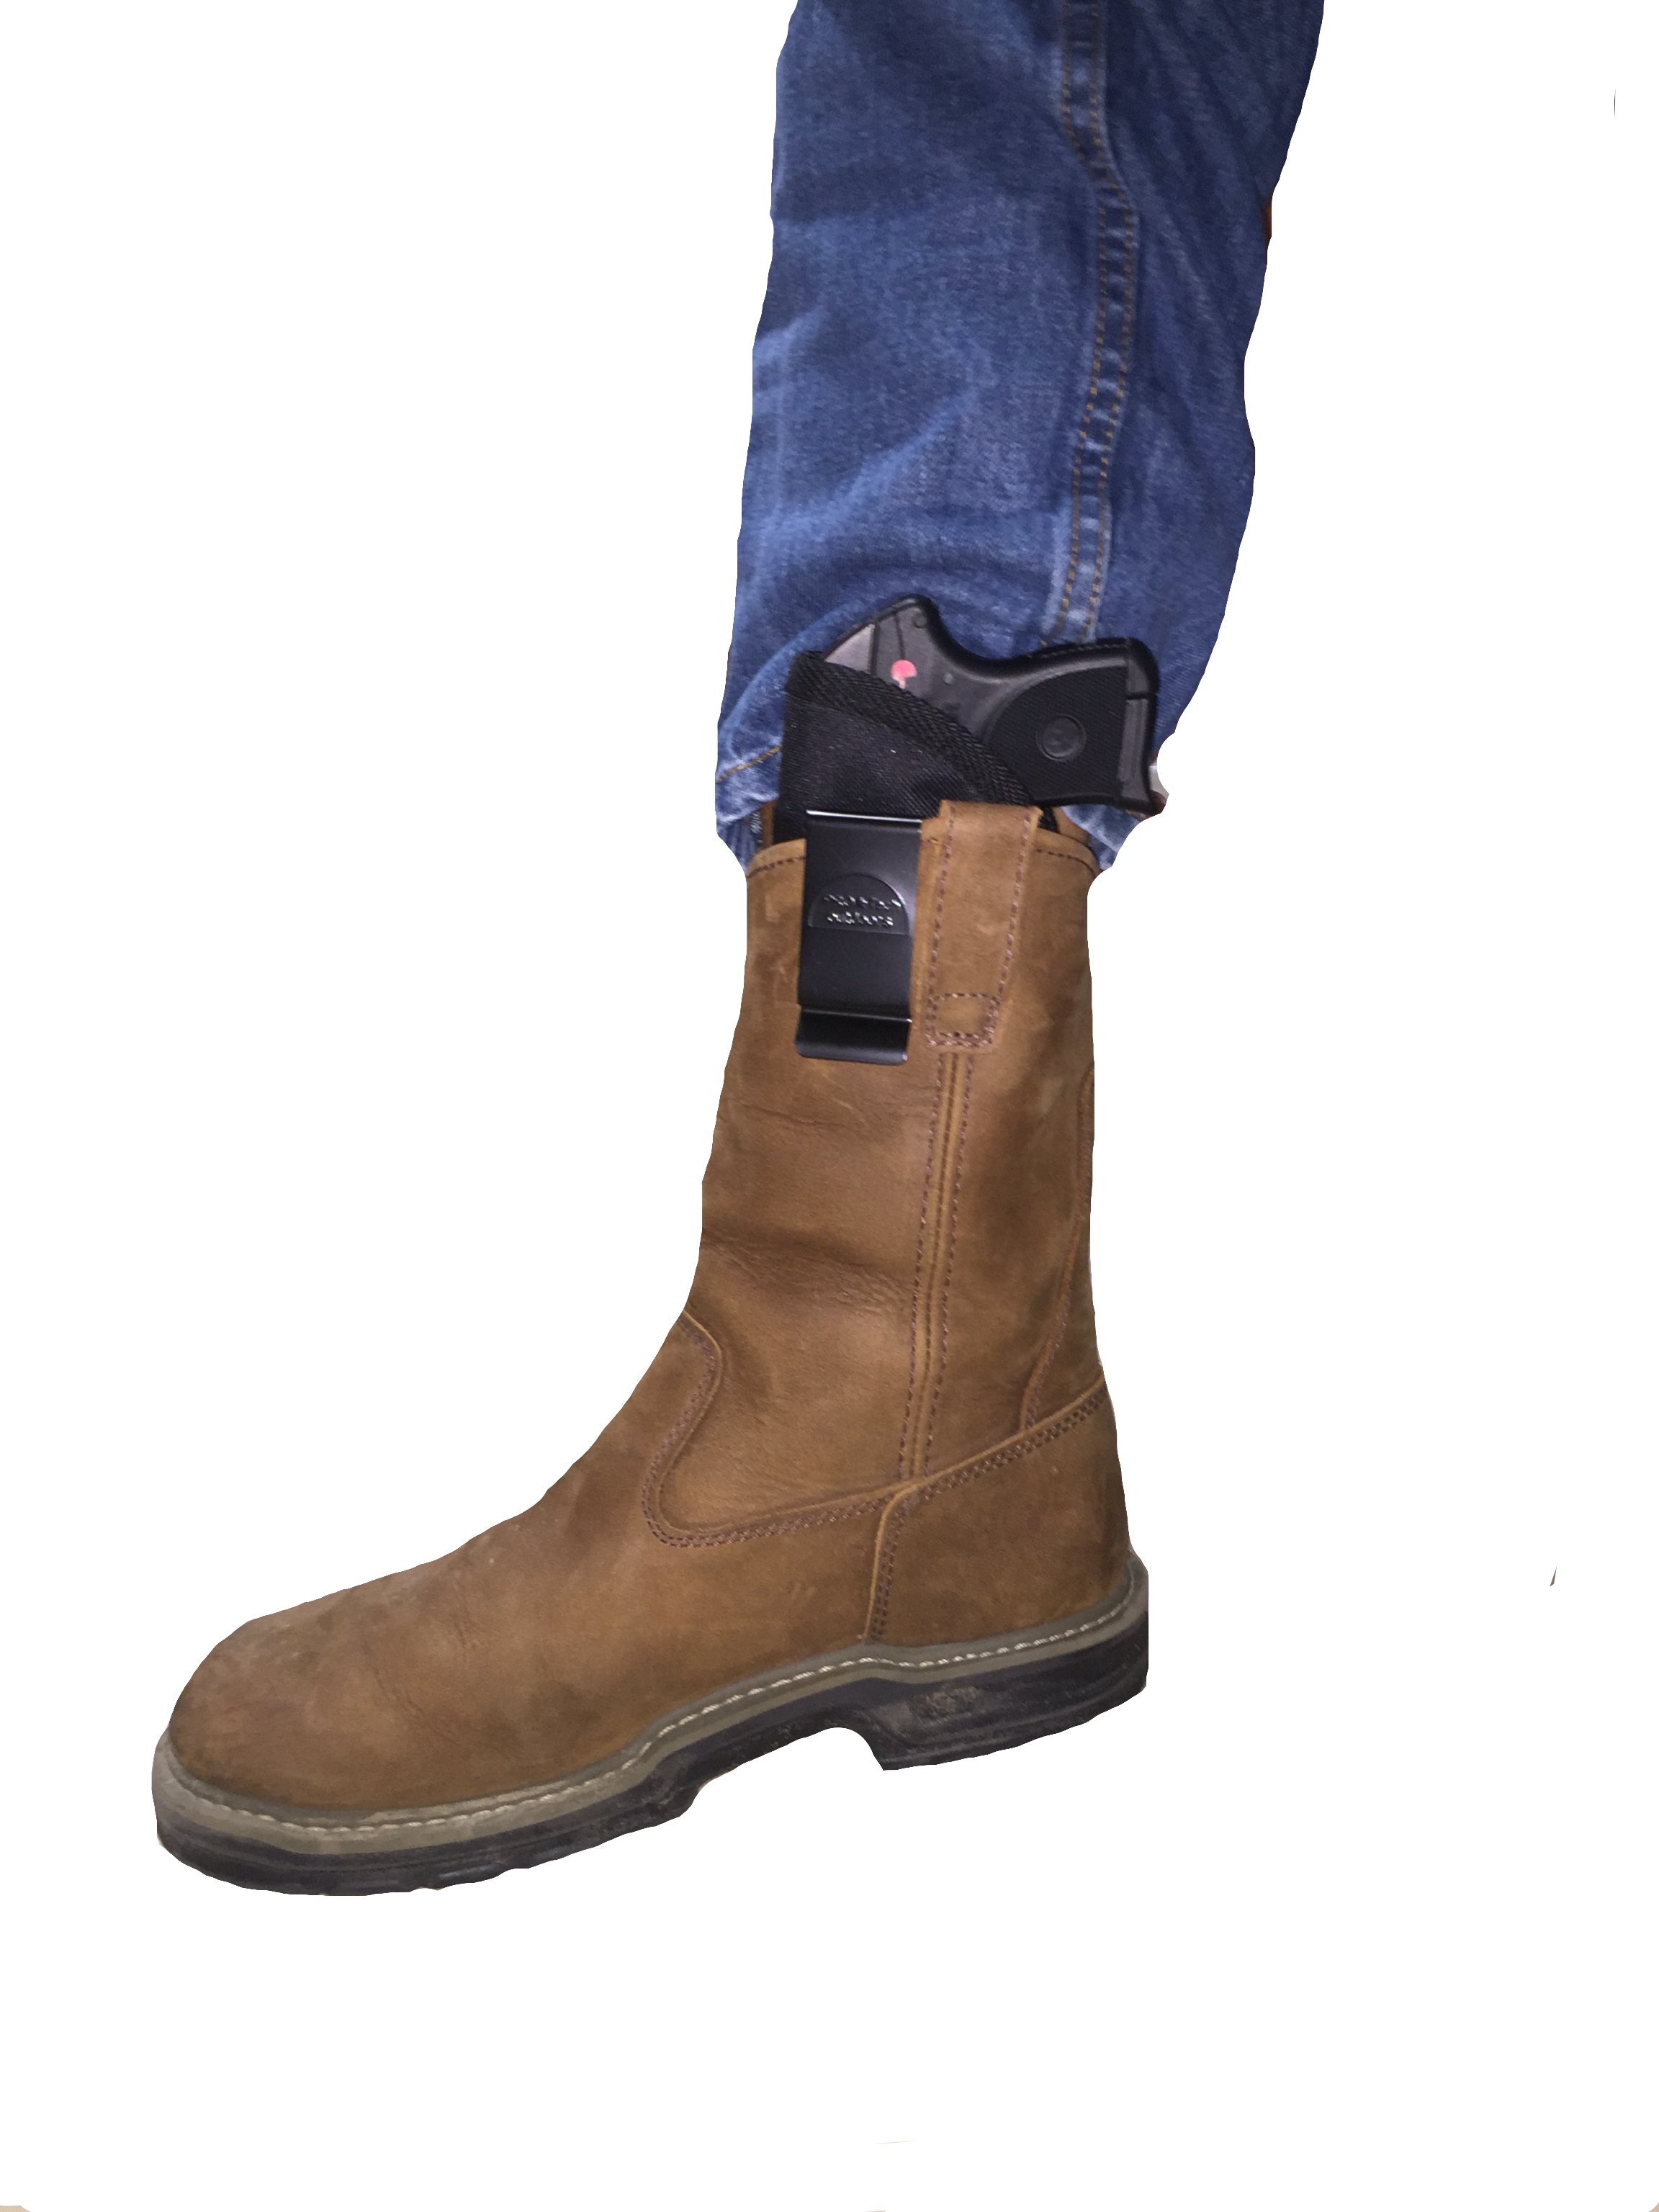 Boot Clip Holster